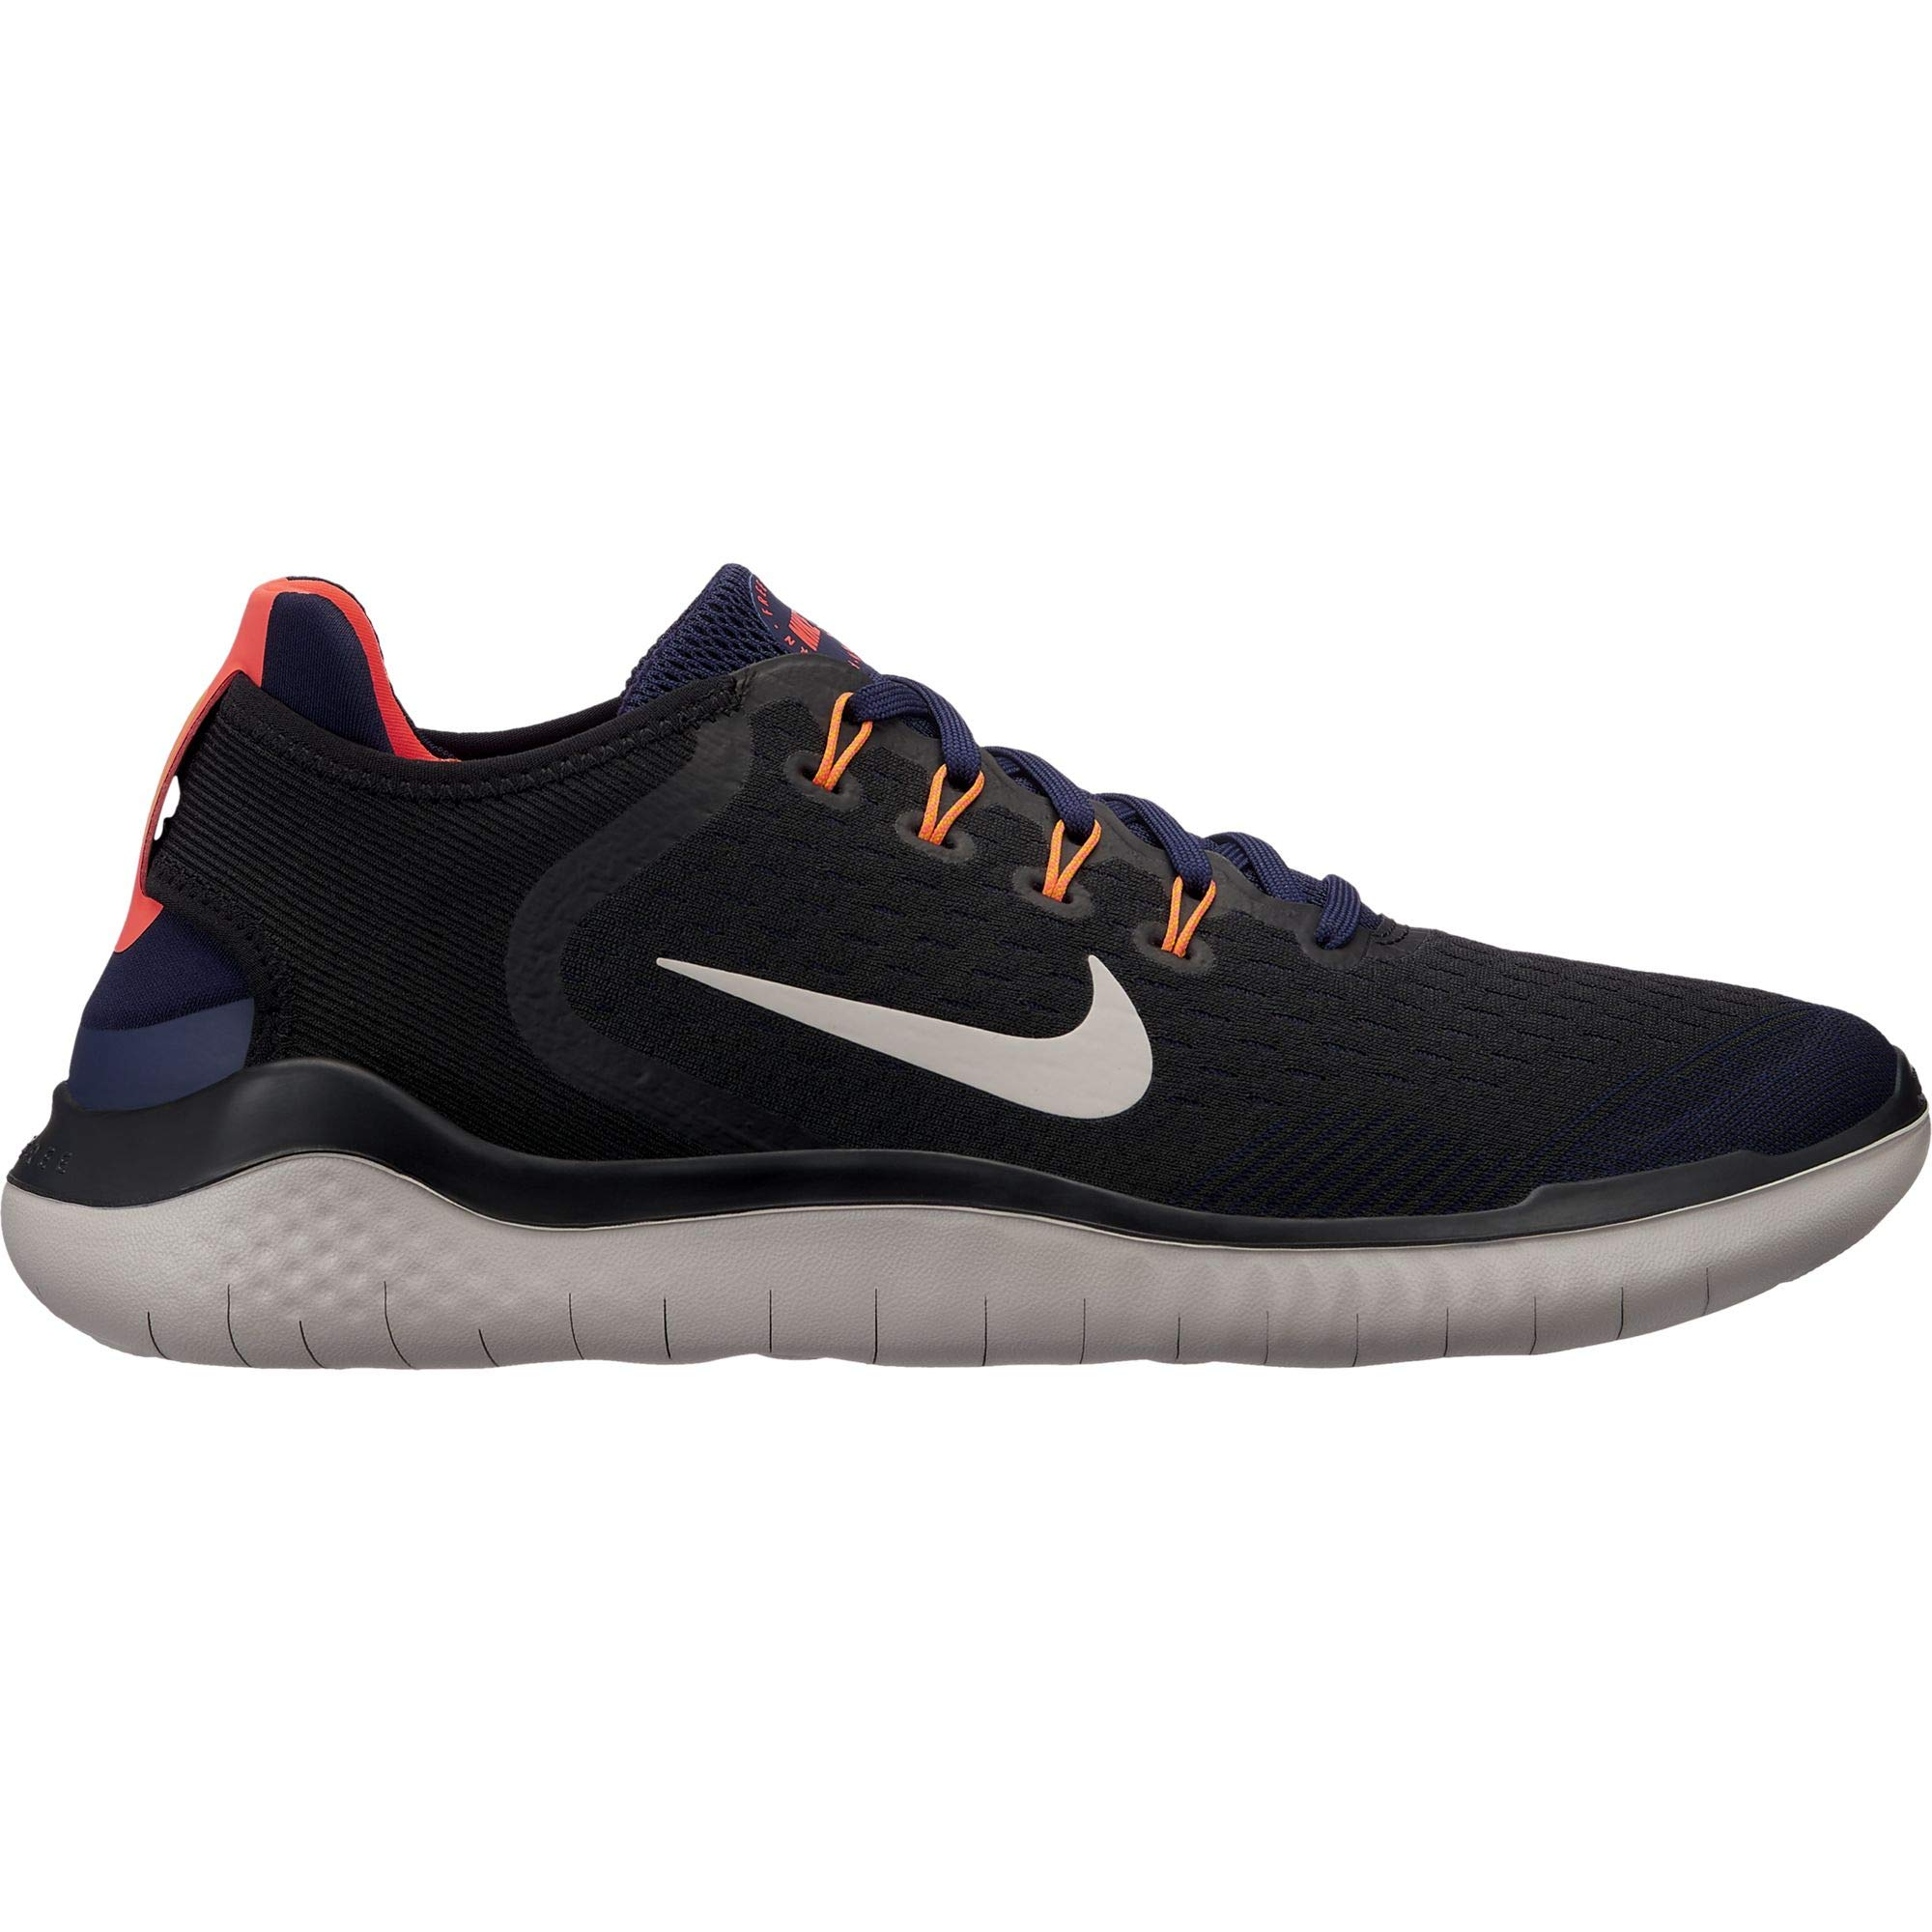 05d5348aa266 Galleon - NIKE Men s Free RN 2018 Black Moon Particle Blackened Blue Size  10.5 M US